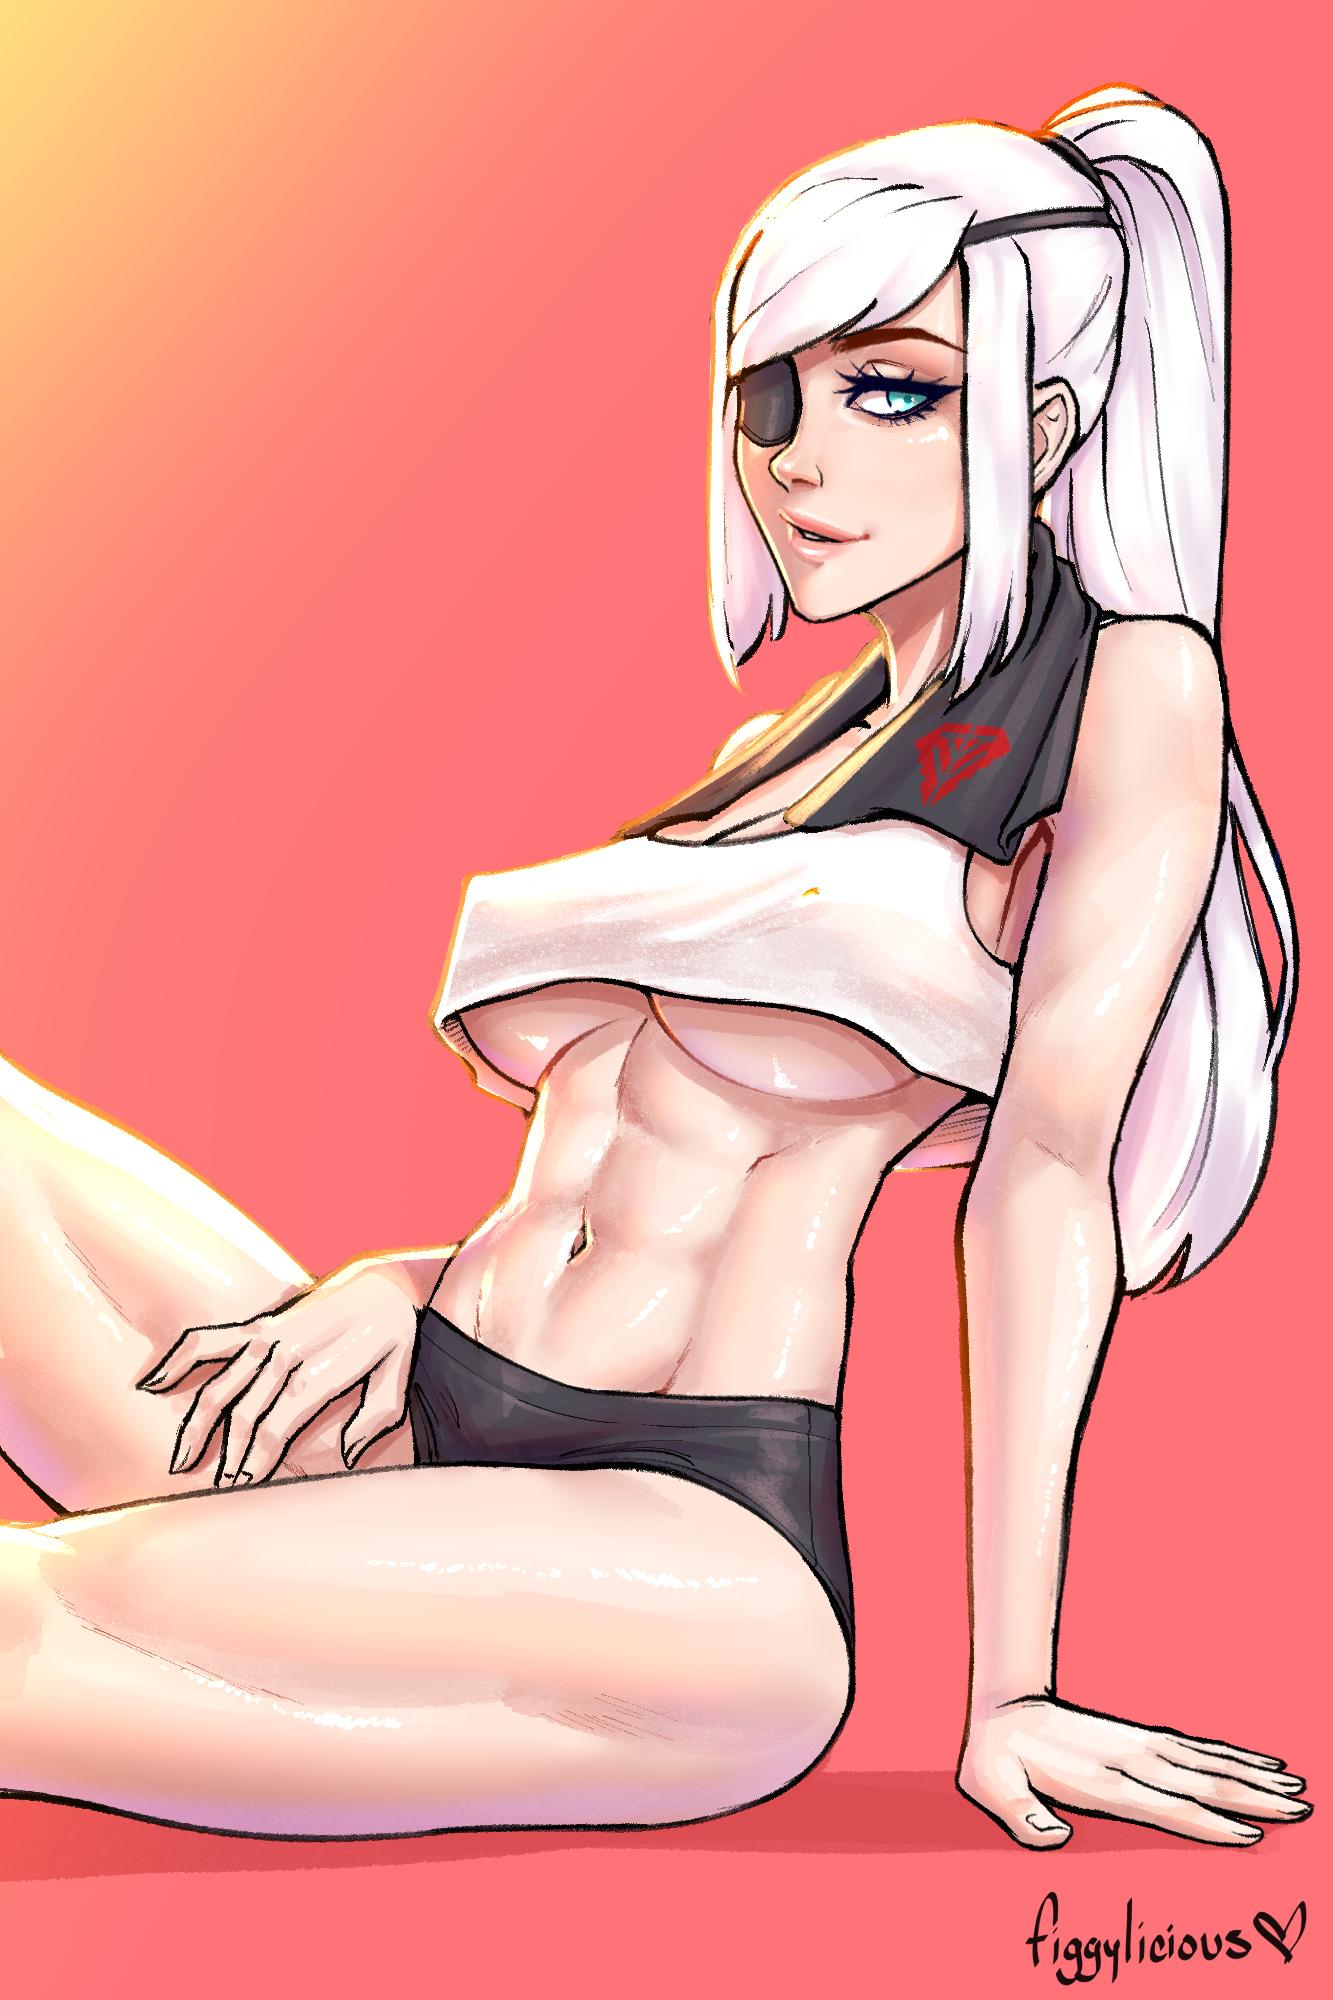 1girl abs black_shorts blue_eyes borrowed_character breasts commission crop_top crop_top_overhang eyelashes eyepatch figgylicious highres large_breasts lips long_hair looking_at_viewer navel no_bra one-eyed original ponytail red_background sailor_collar short_shorts shorts silver_hair sitting solo stomach thick_thighs thighs toned under_boob valestina